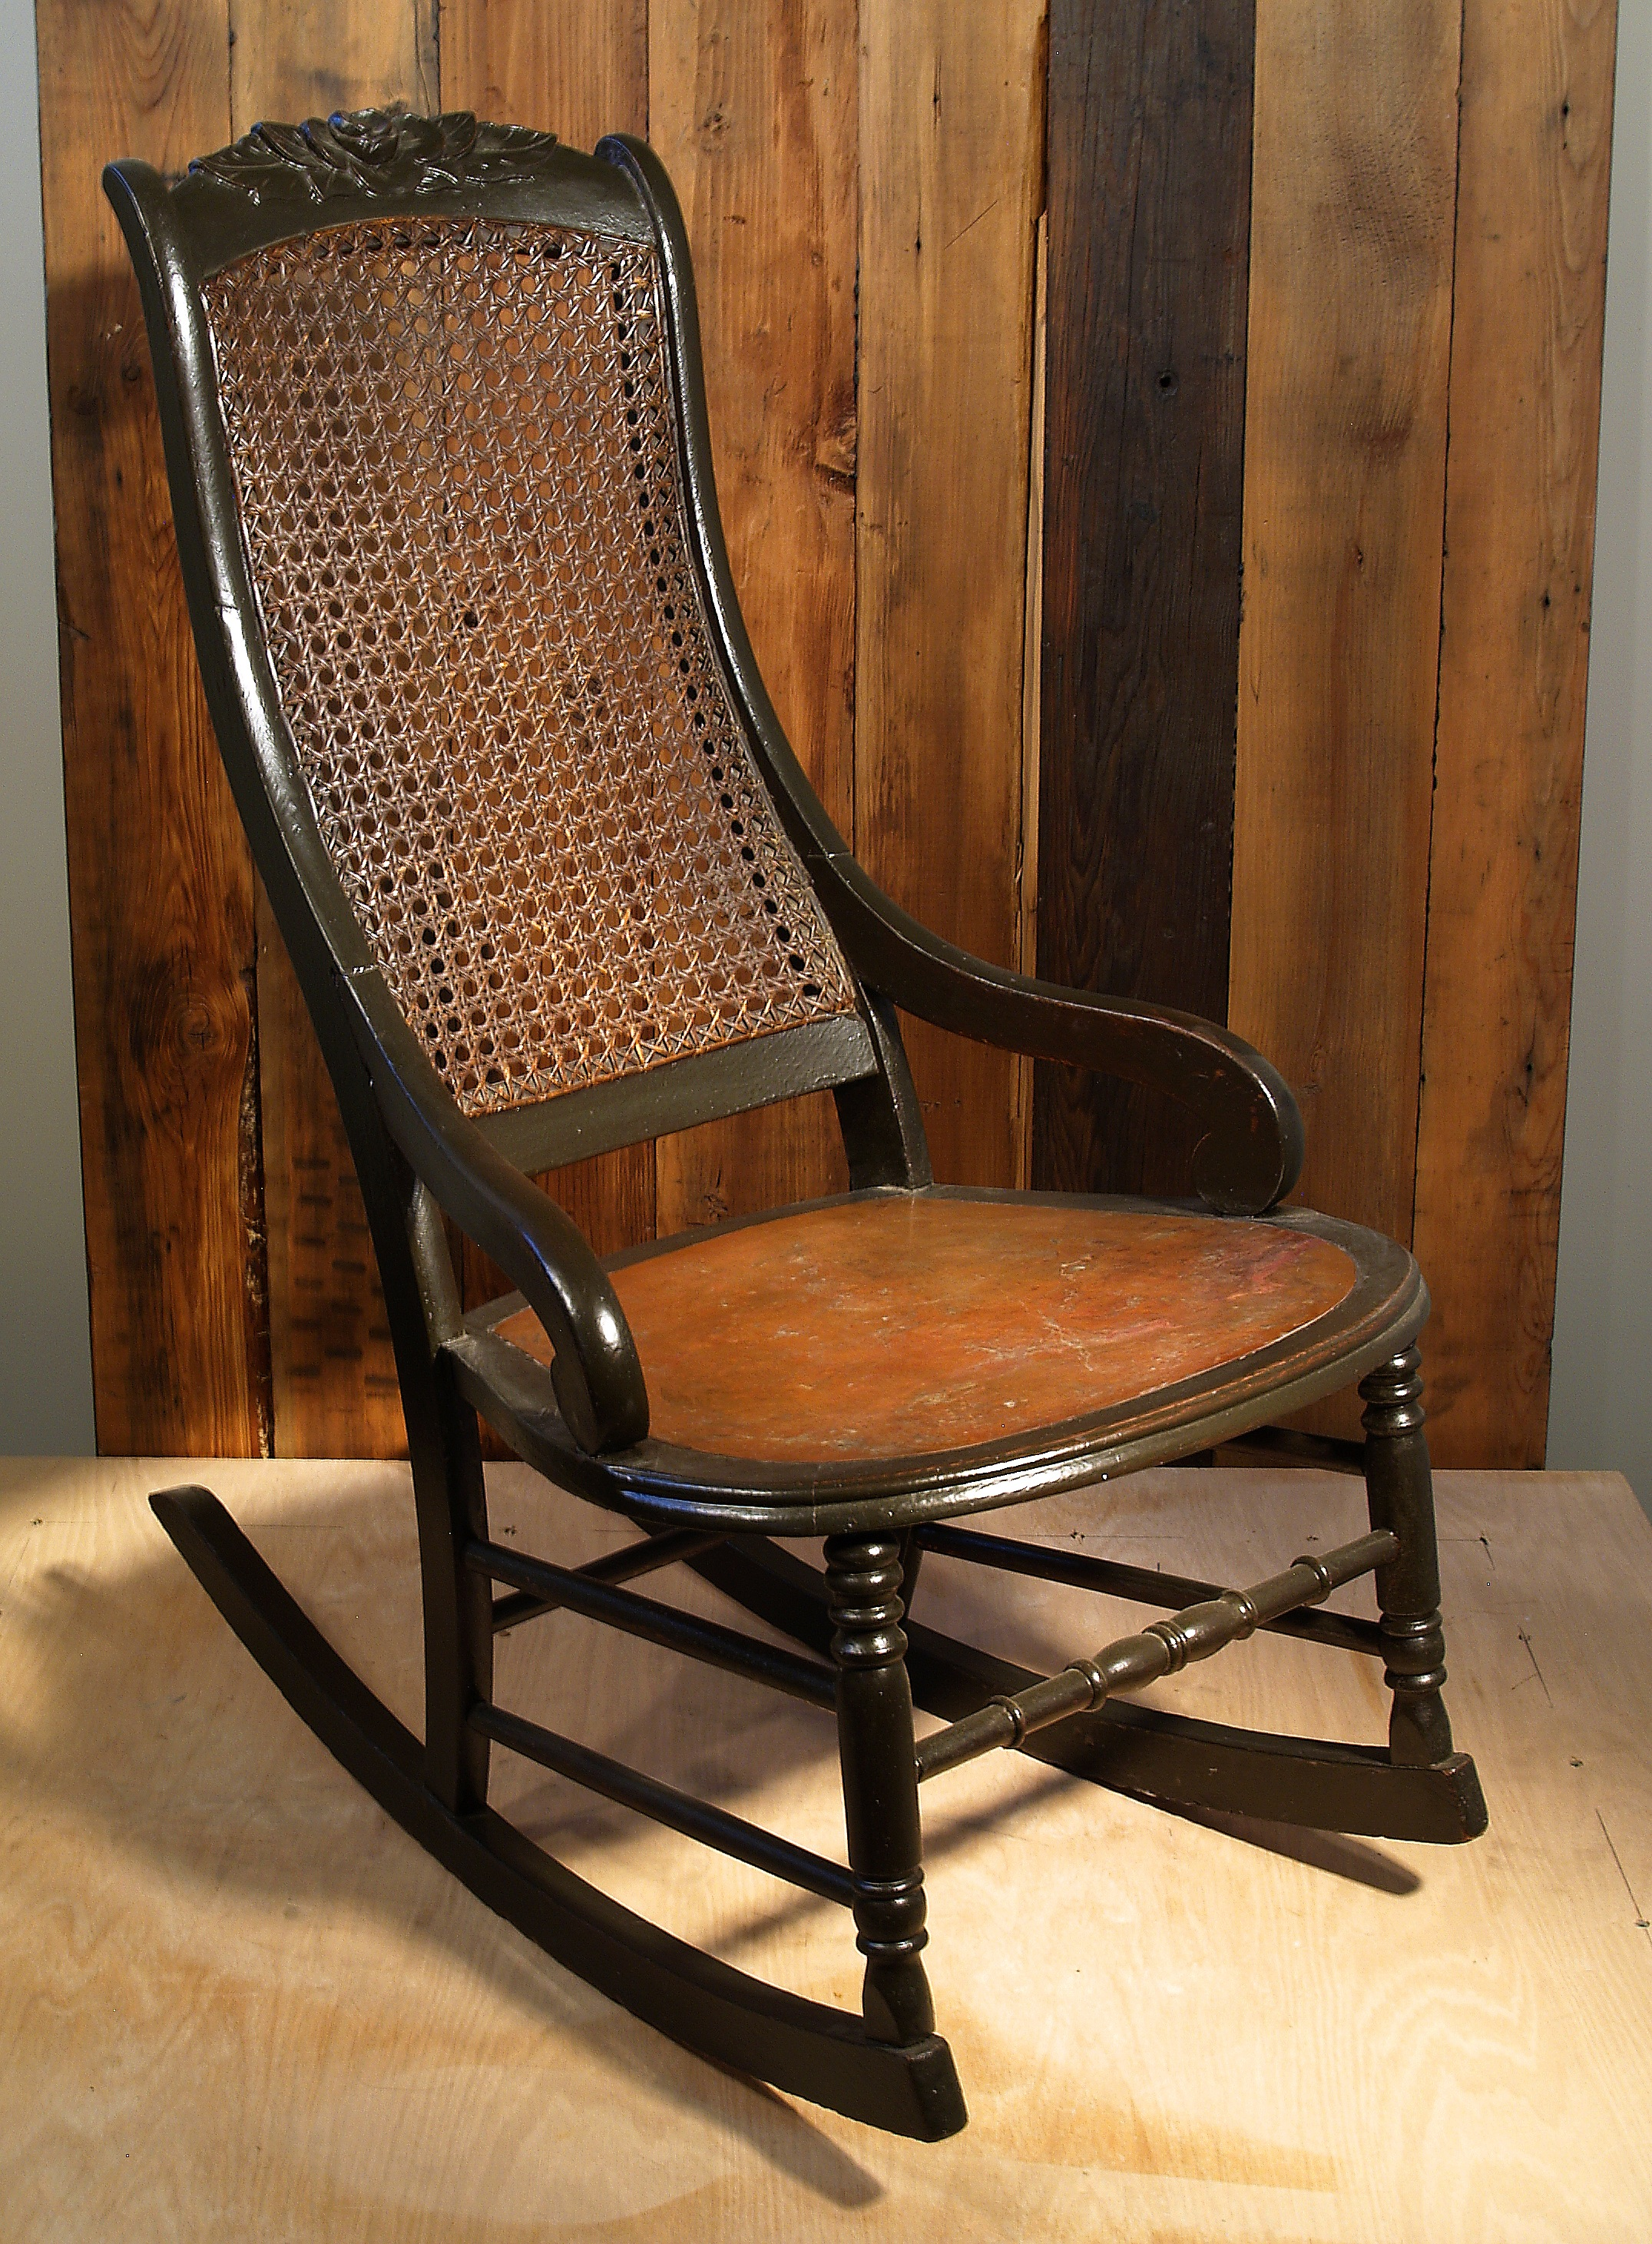 Antique rocker with copper seat plate.